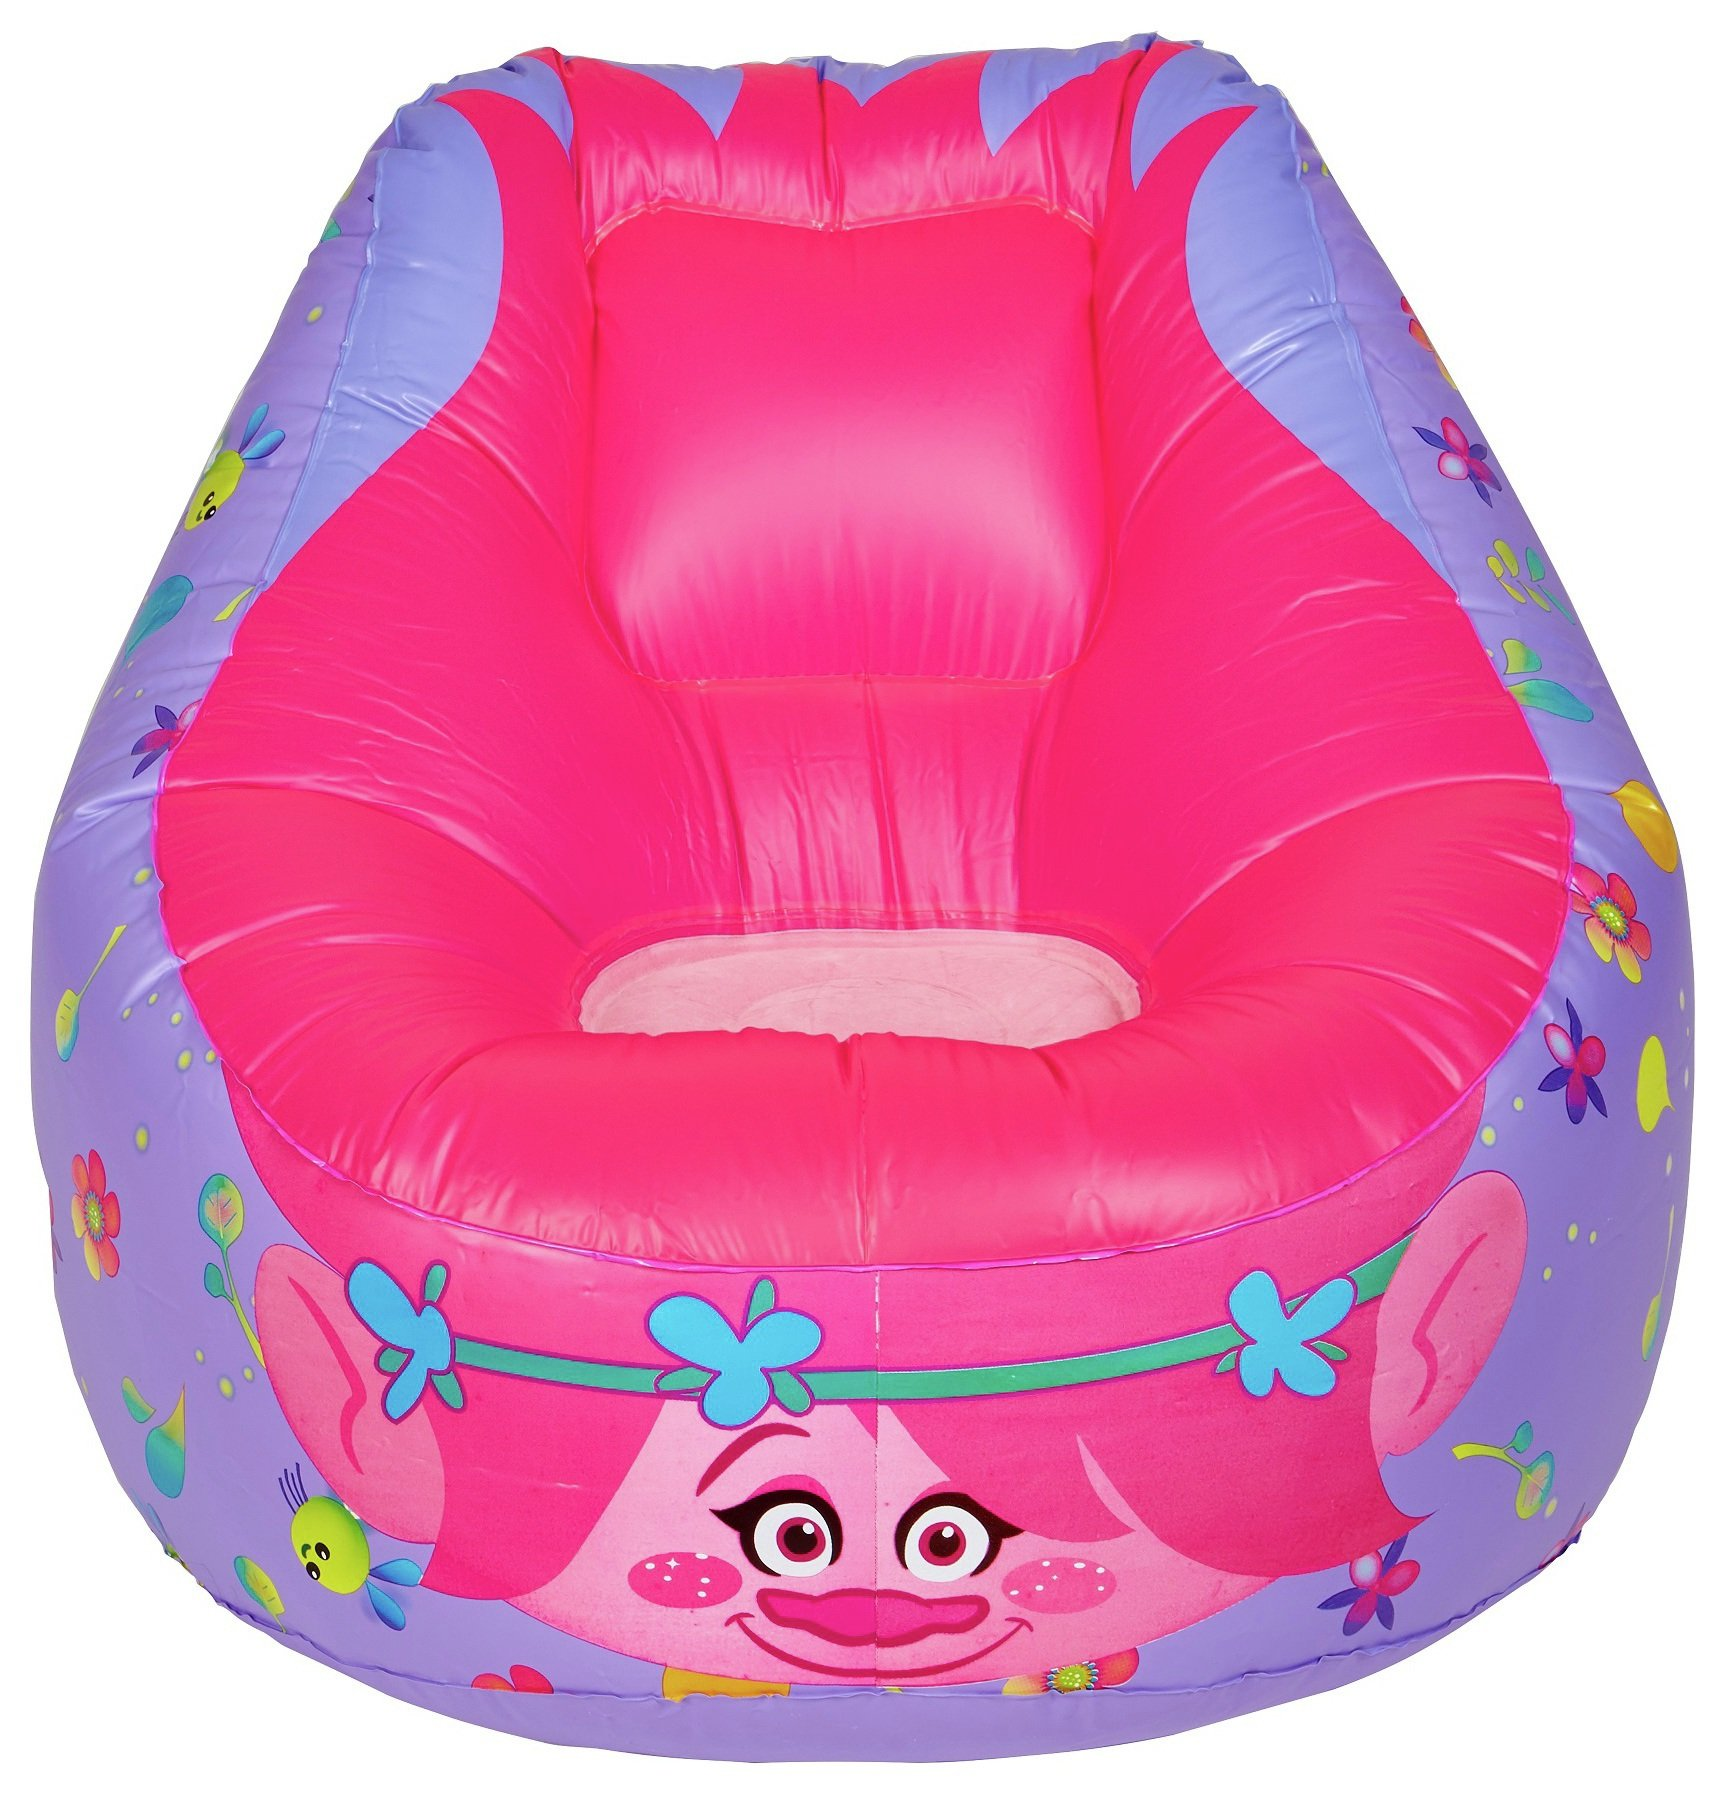 inflatable camping sofa argos california king bed simpsons gift shop